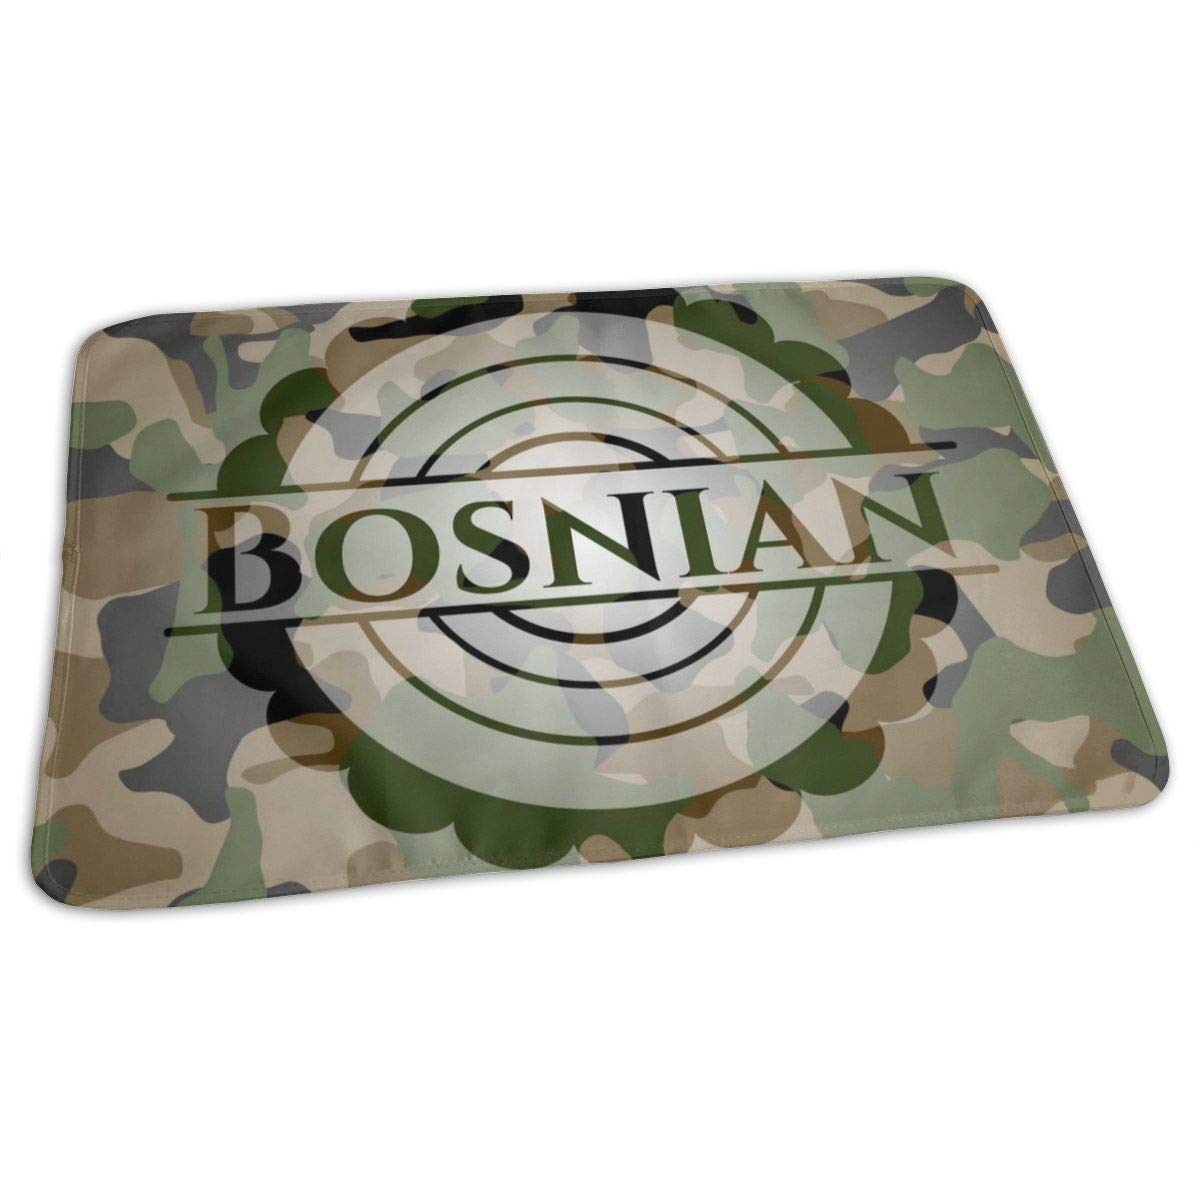 Osvbs Lovely Baby Reusable Waterproof Portable Bosnian Written On A Camouflage Texture Changing Pad Home Travel 27.5''x19.7'' by Osvbs